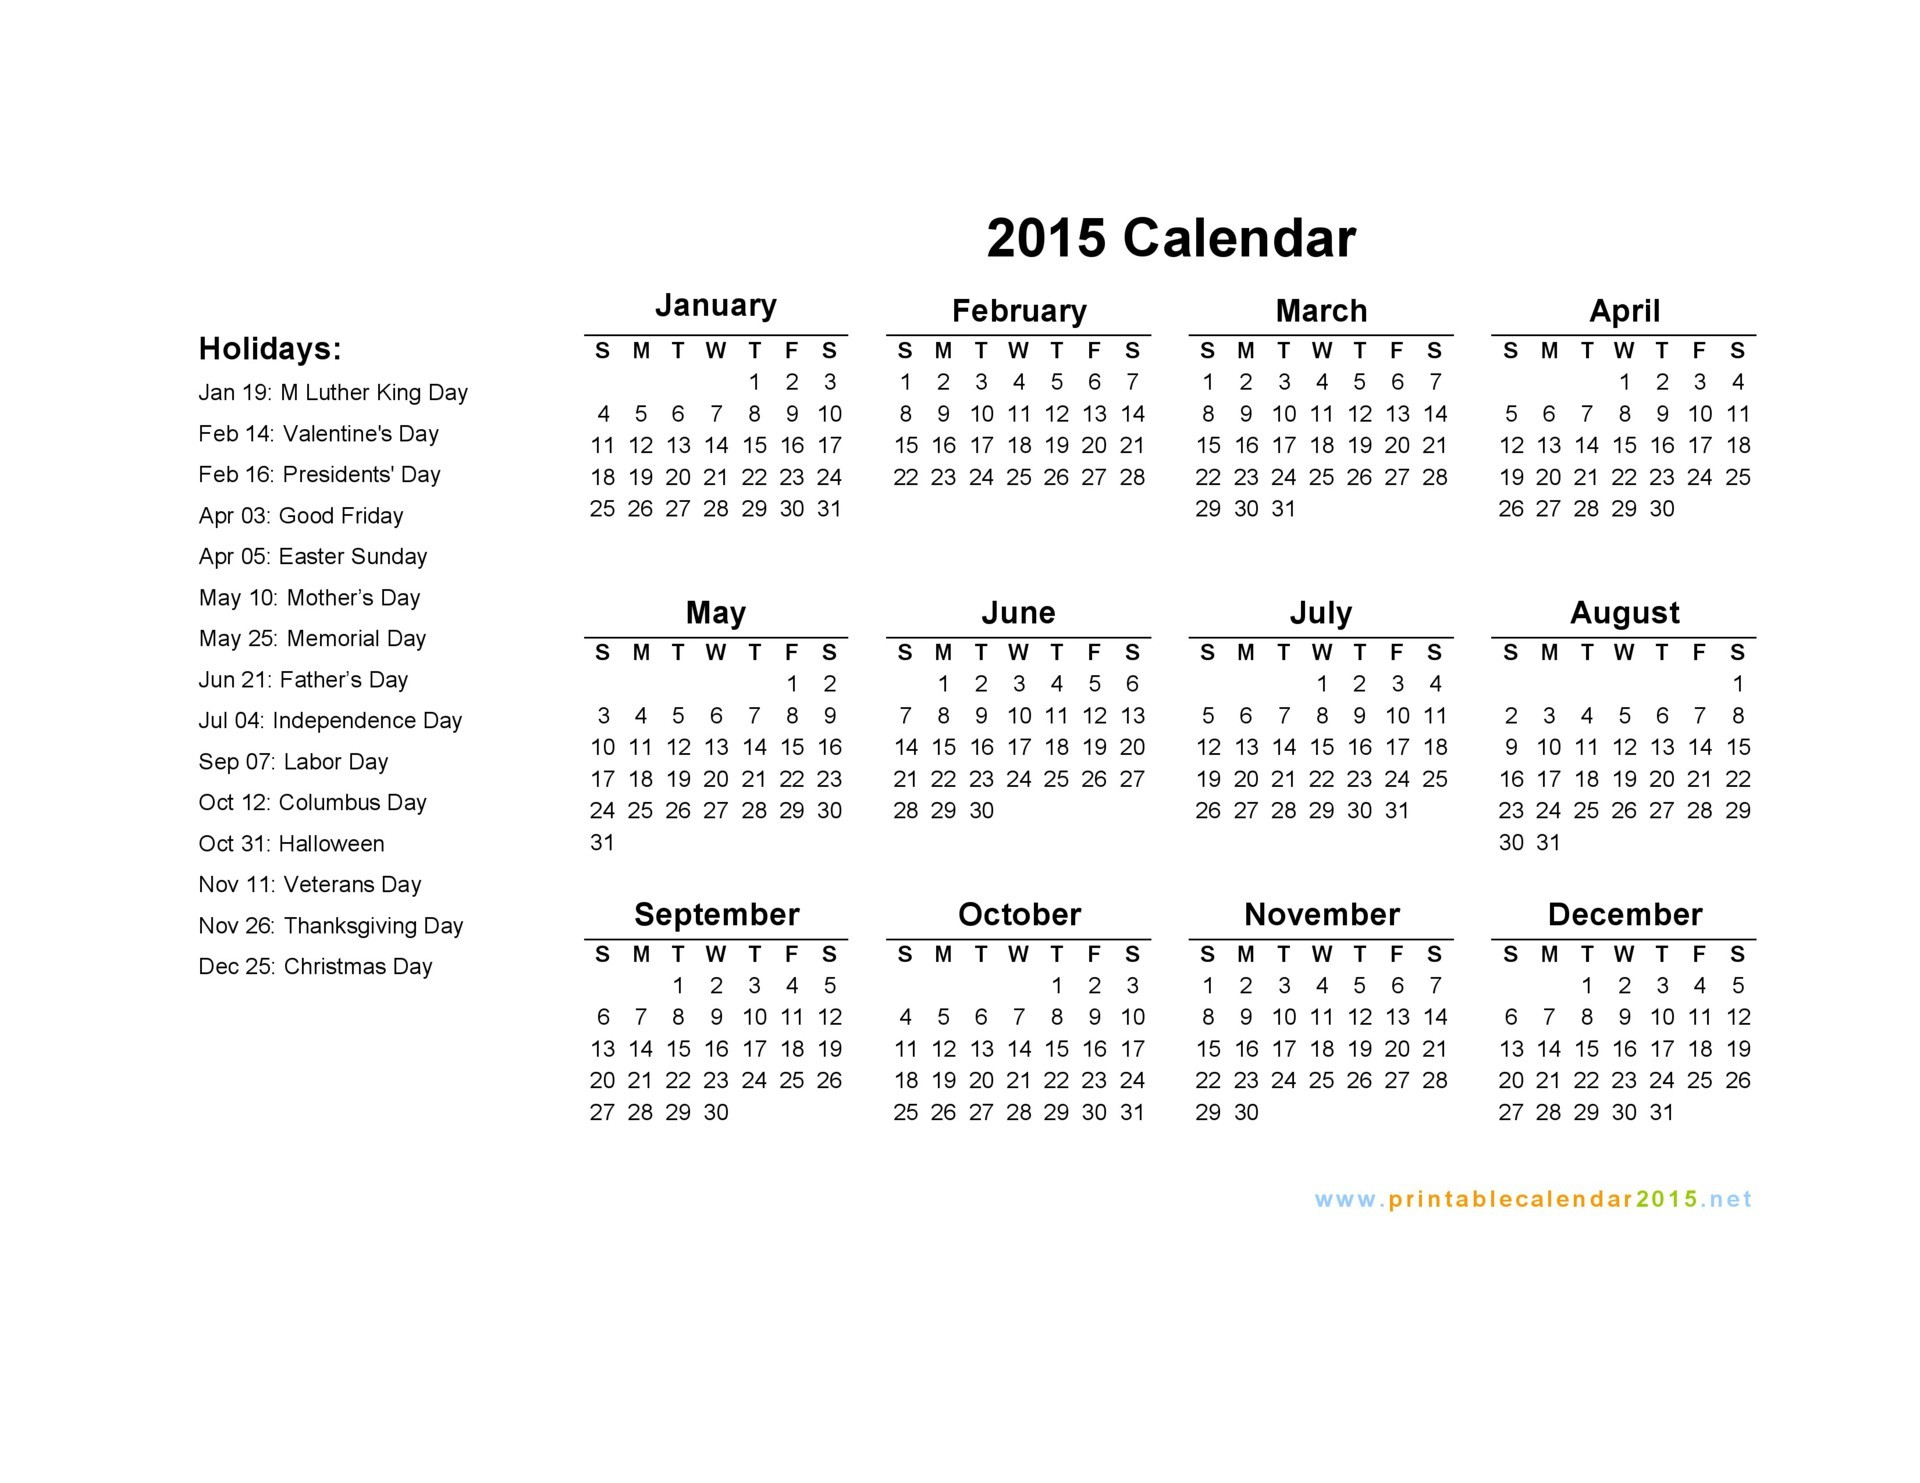 Calendar May 2018 With Holidays : Calendar with holidays pictures images